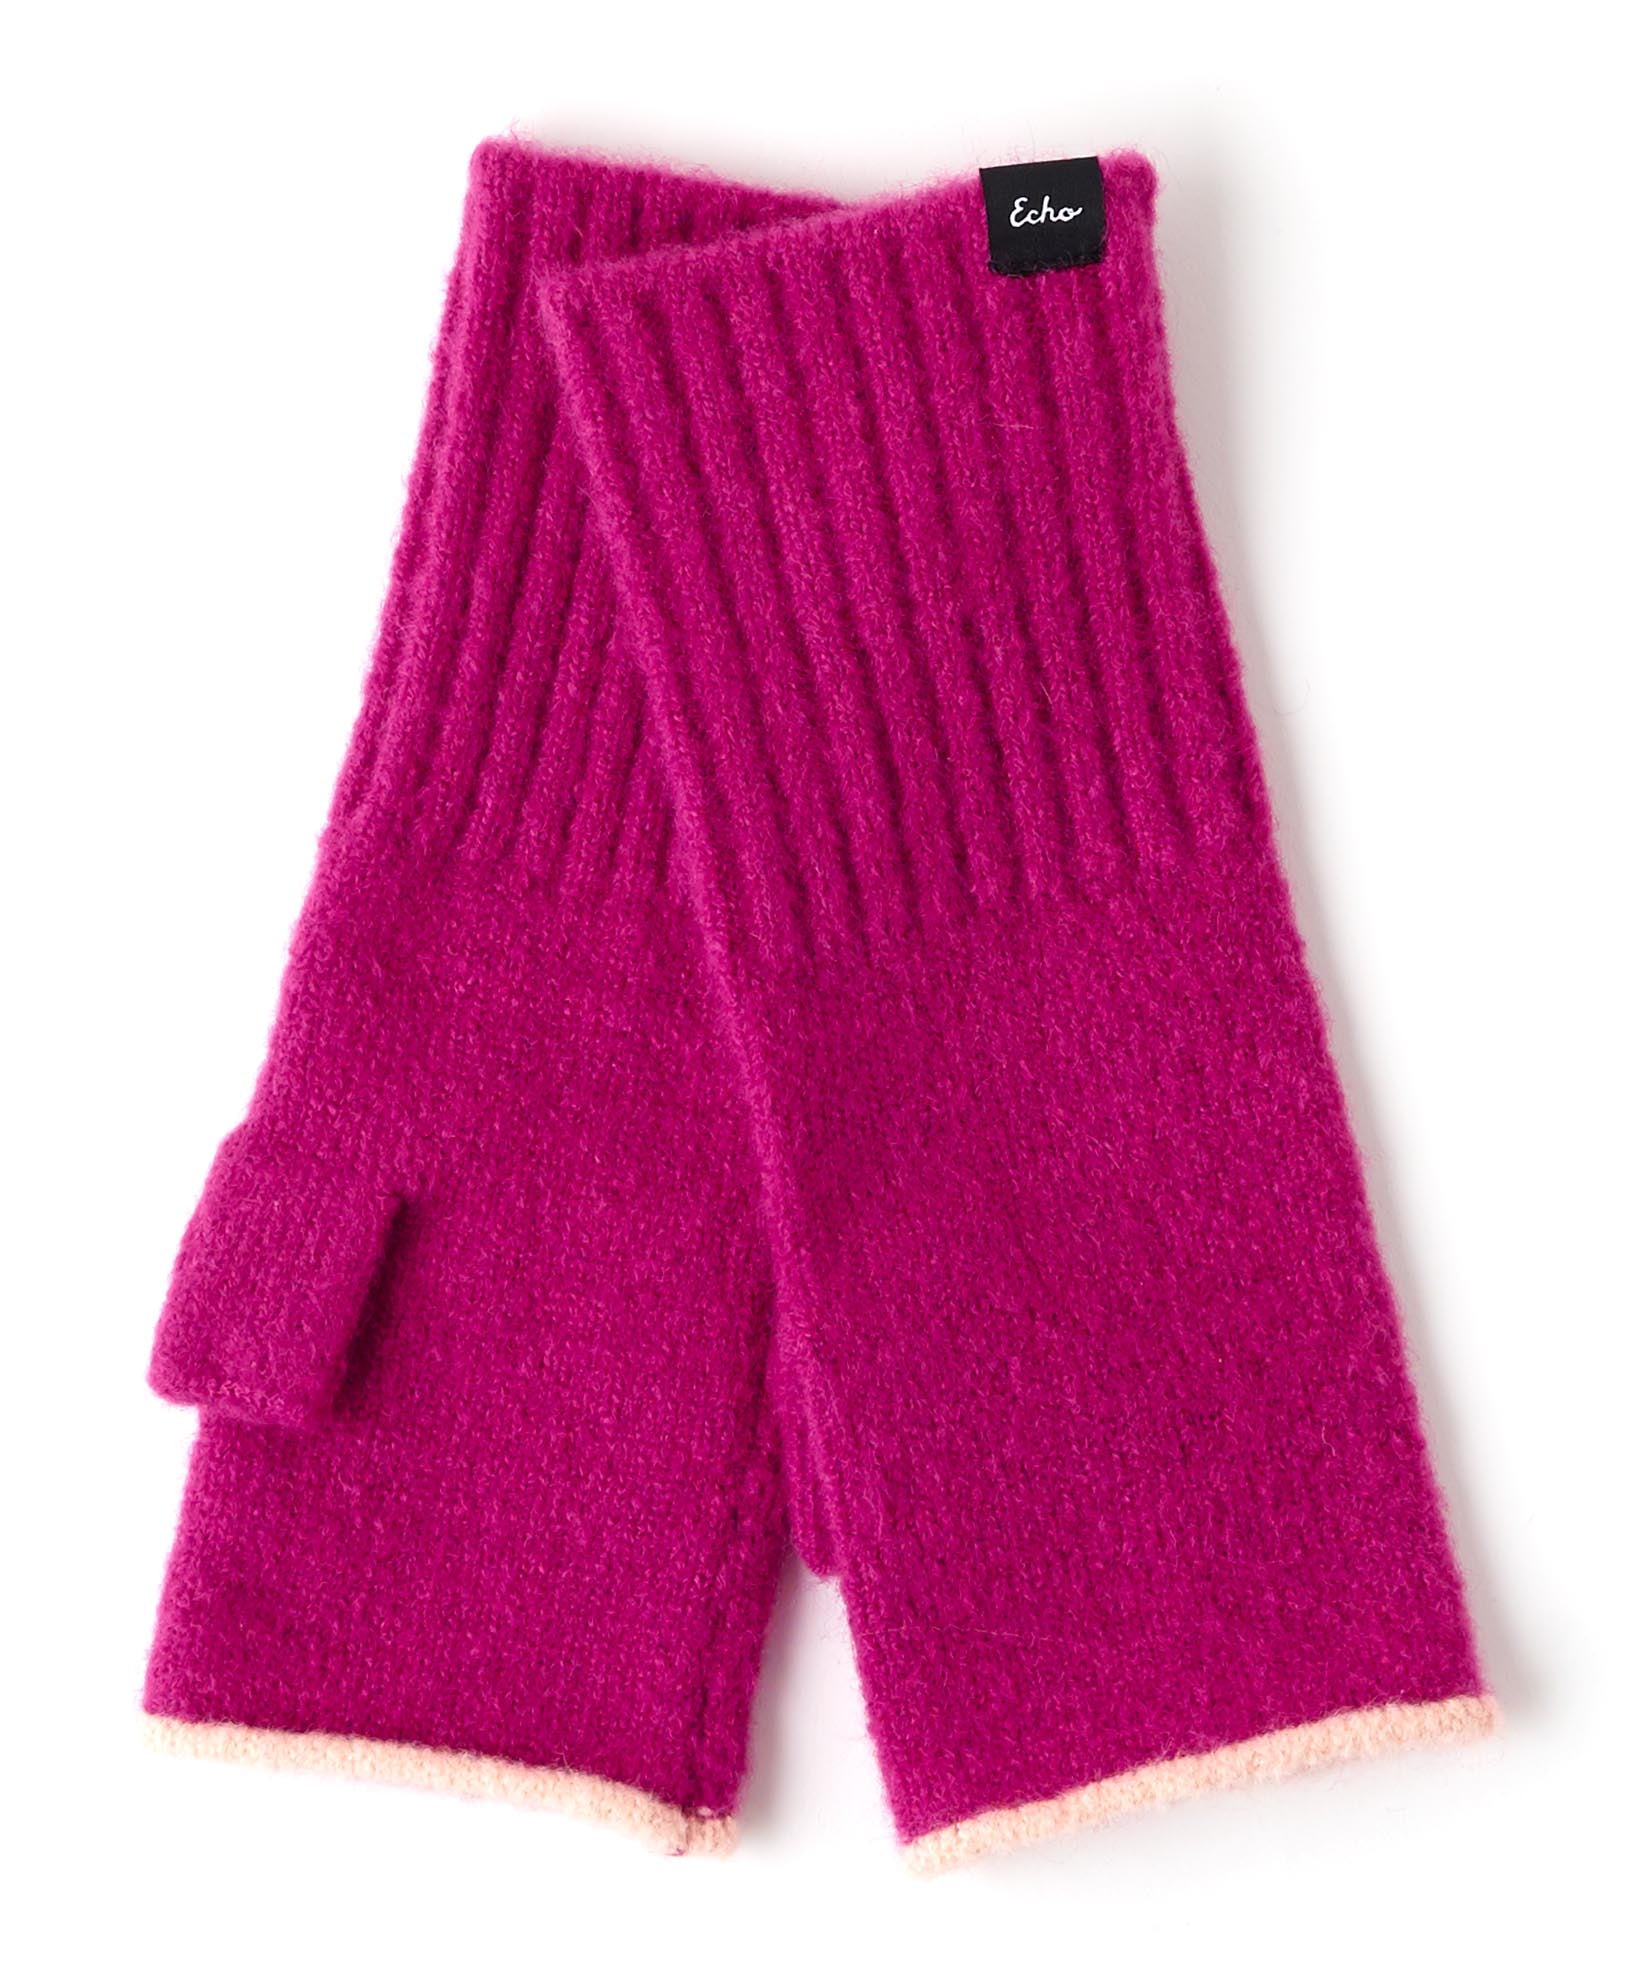 Winterberry - Echo Soft Stretch Fingerless Glove